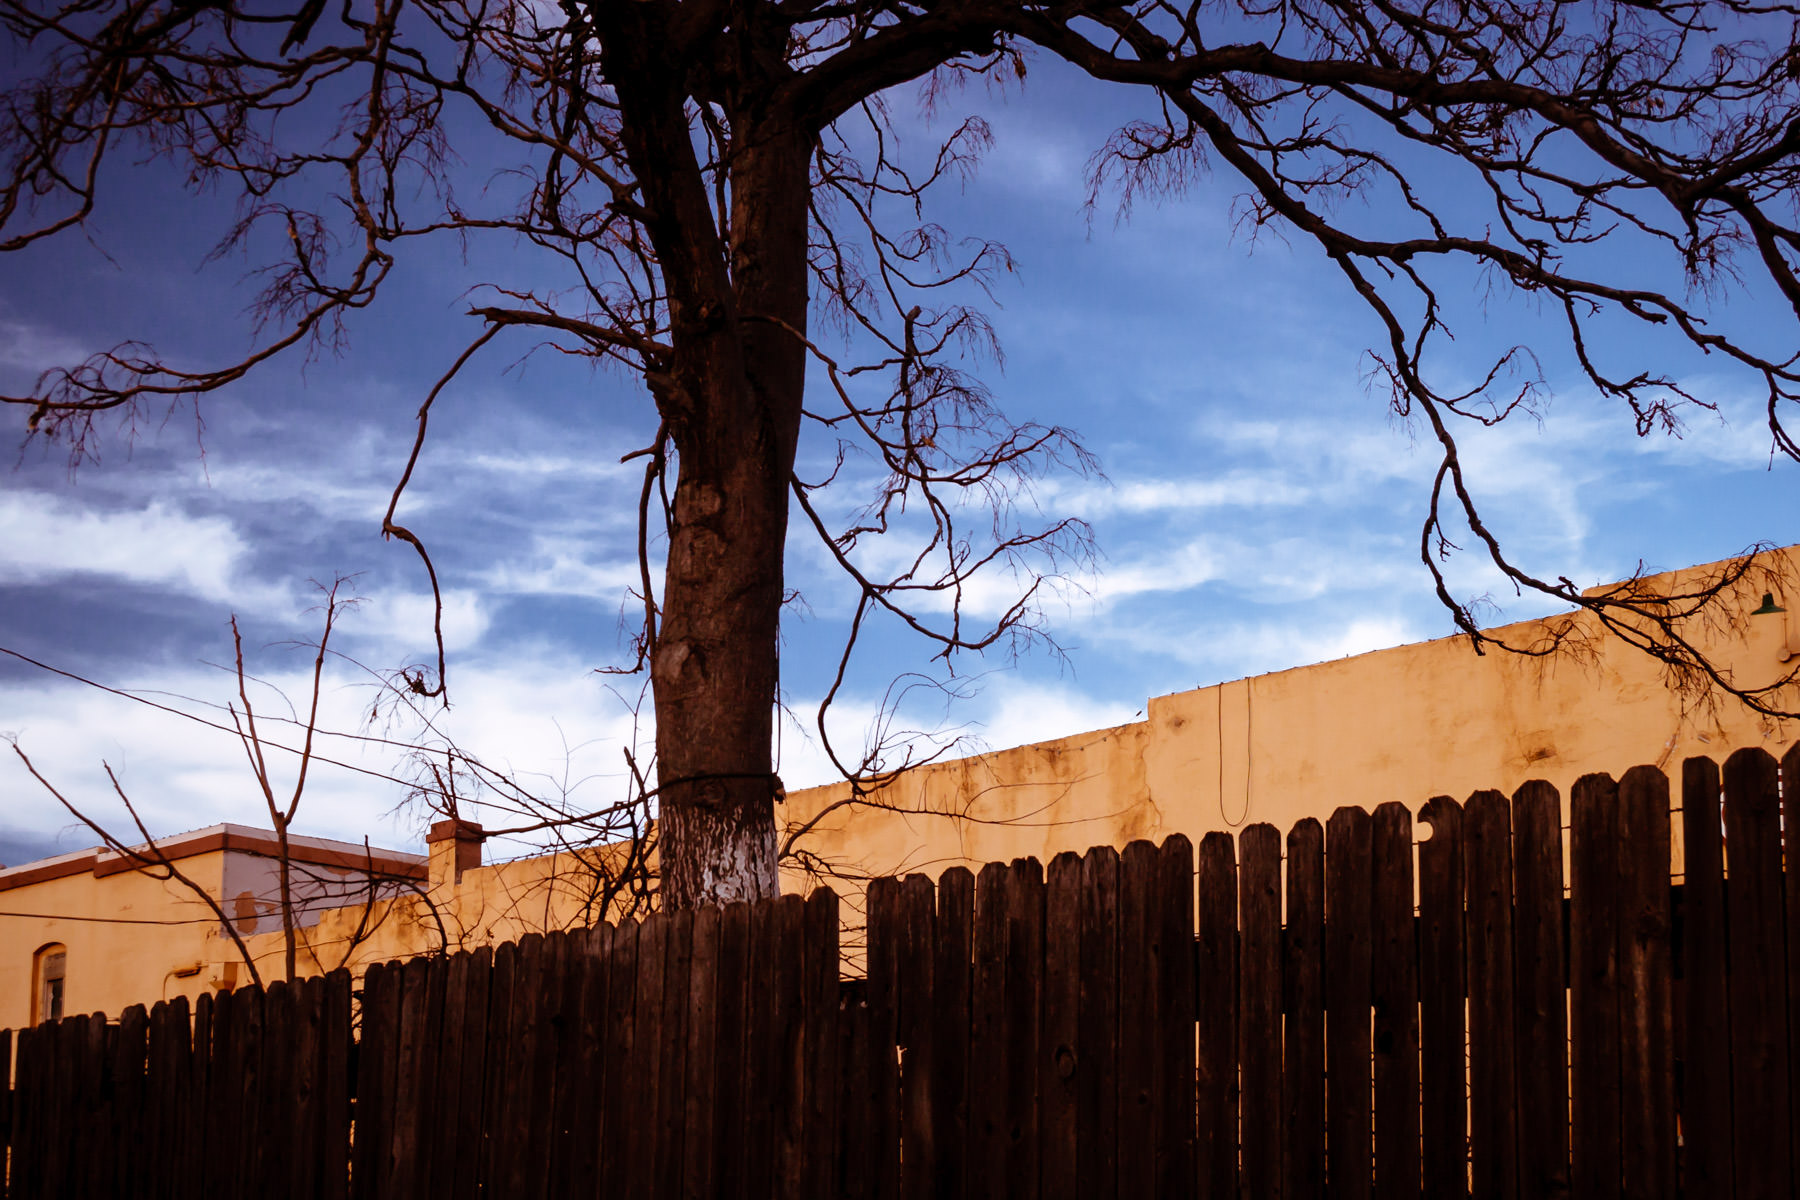 A tree grows on the far side of a fence in Downtown Wichita Falls, Texas.